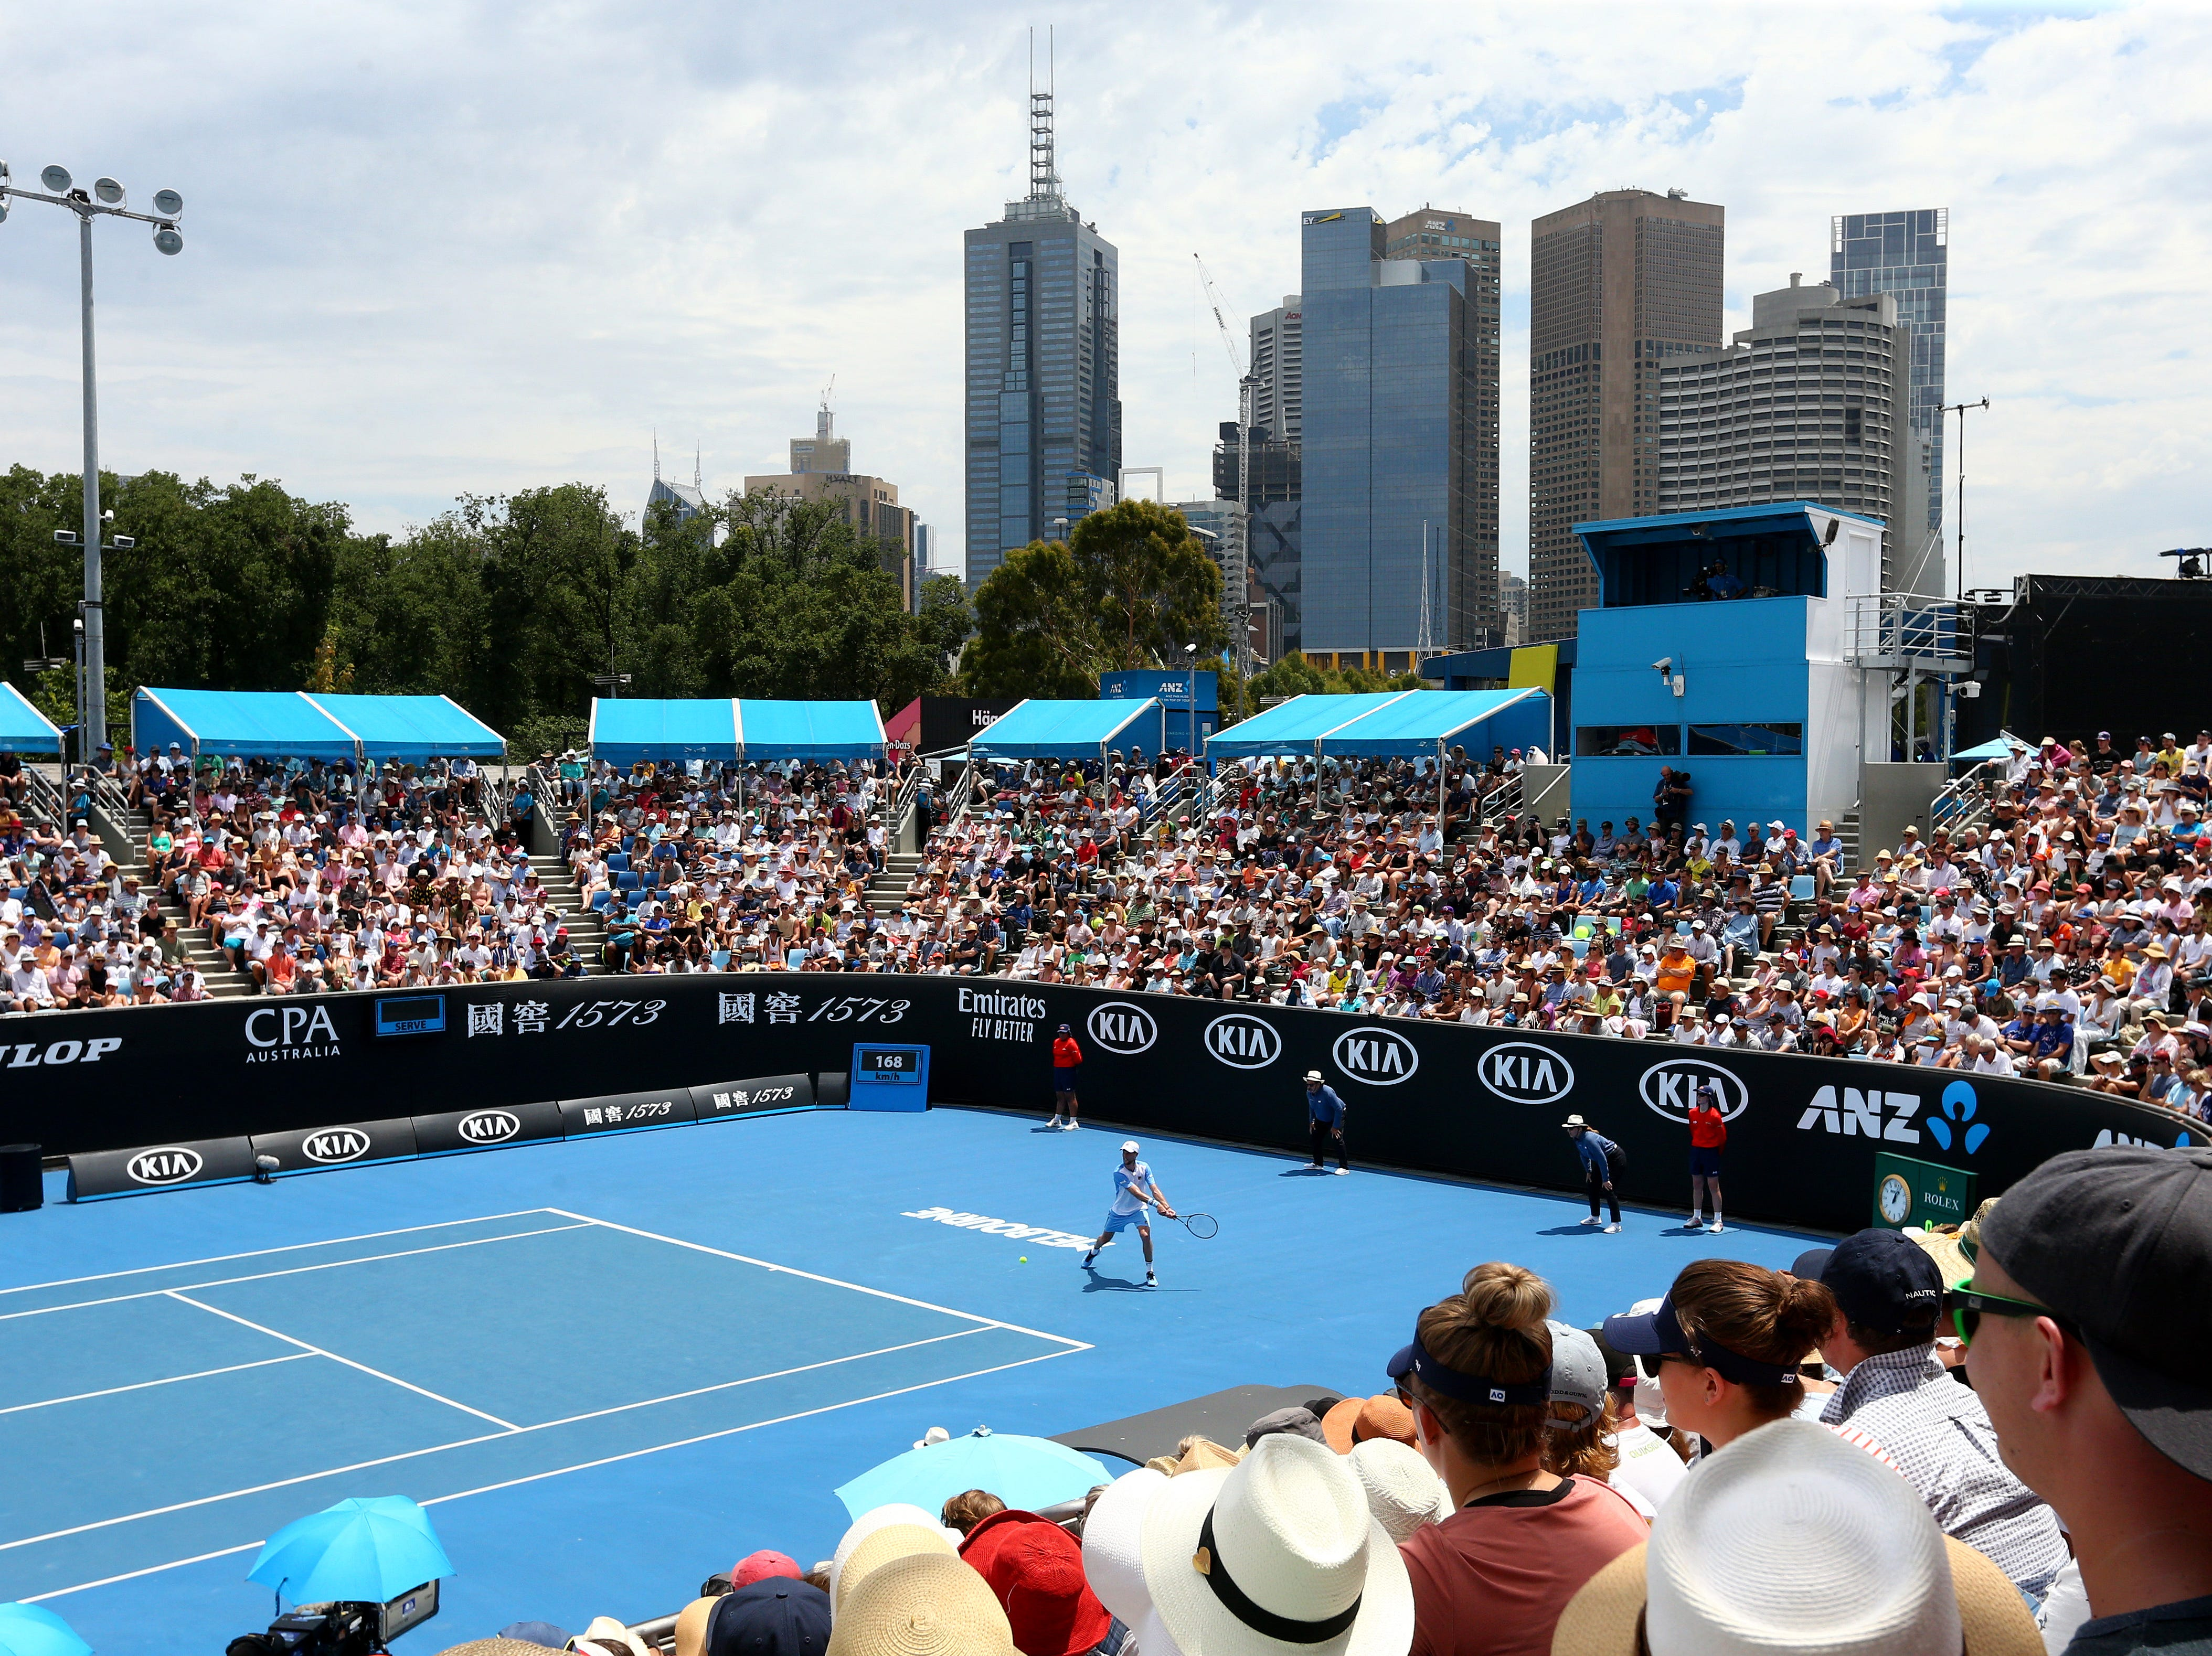 Melbourne high rises soar in the background of 1573 Arena during Day 3 of the Australian Oepn.